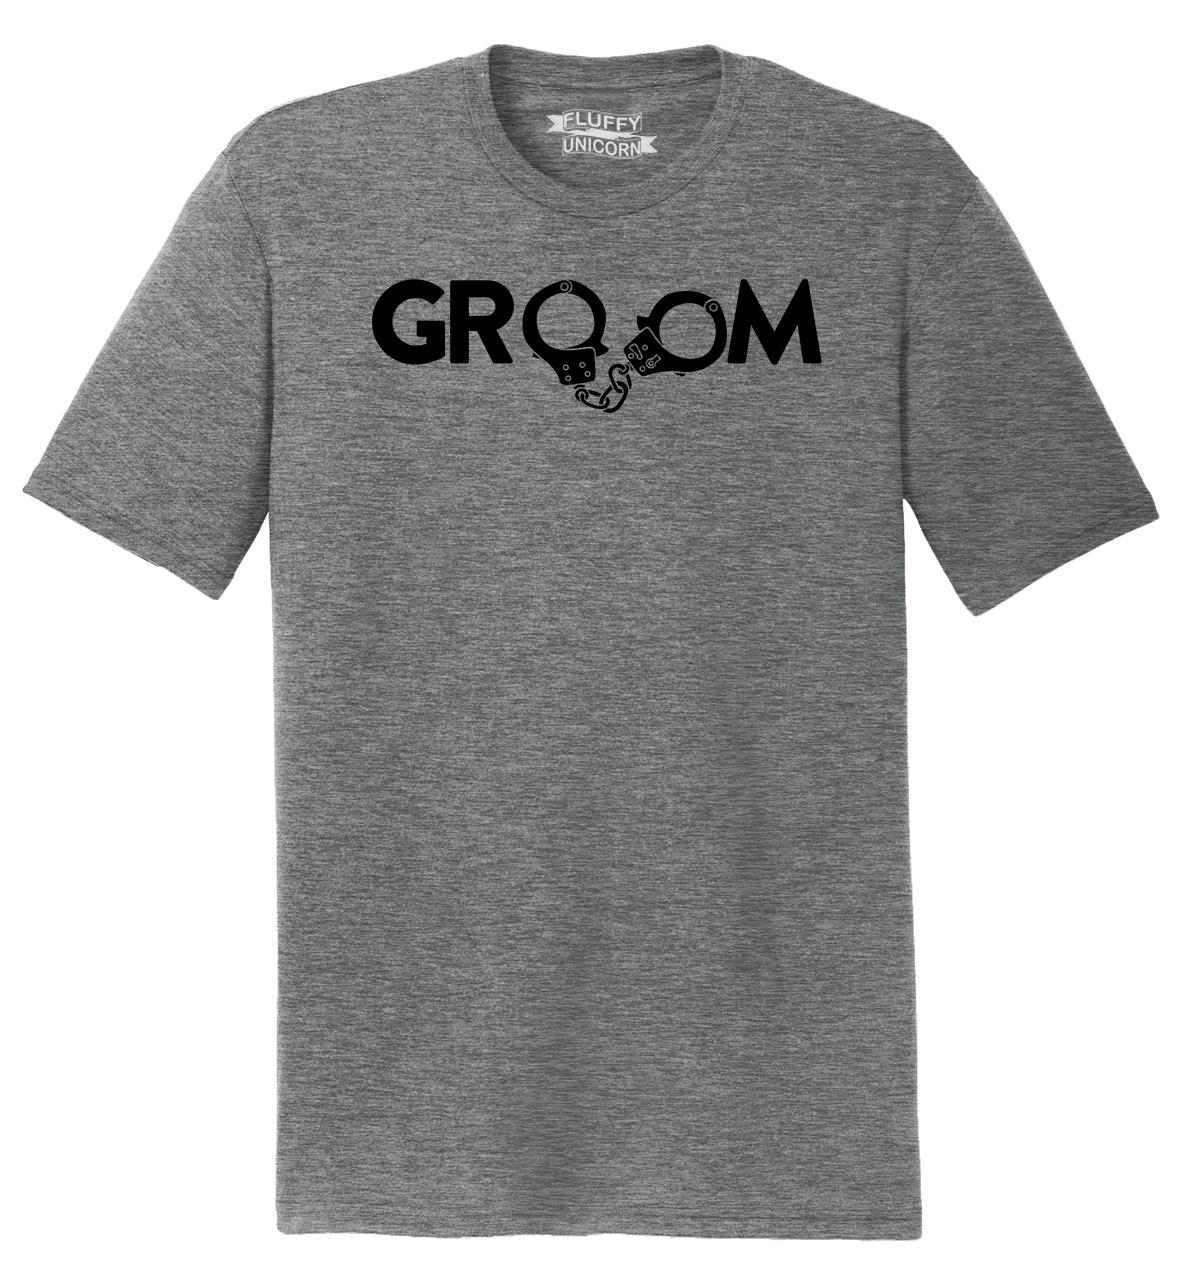 Funny Wedding Gifts For Groom: Mens Groom Handcuffs Funny Marriage Wedding Gift Shirt Tri